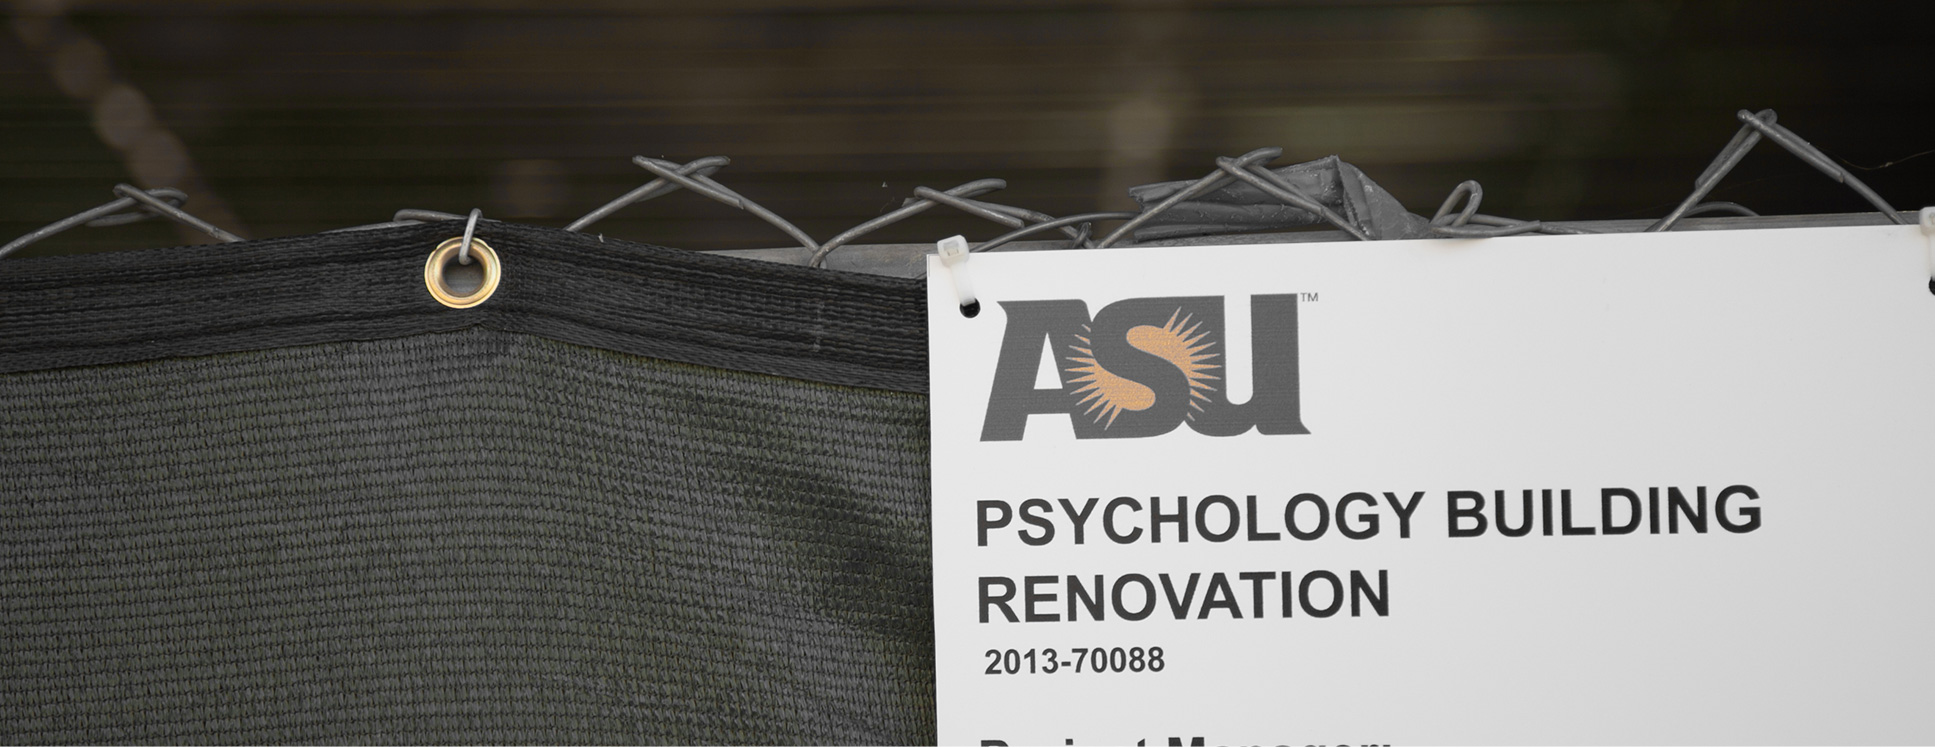 ASU Psychology Building